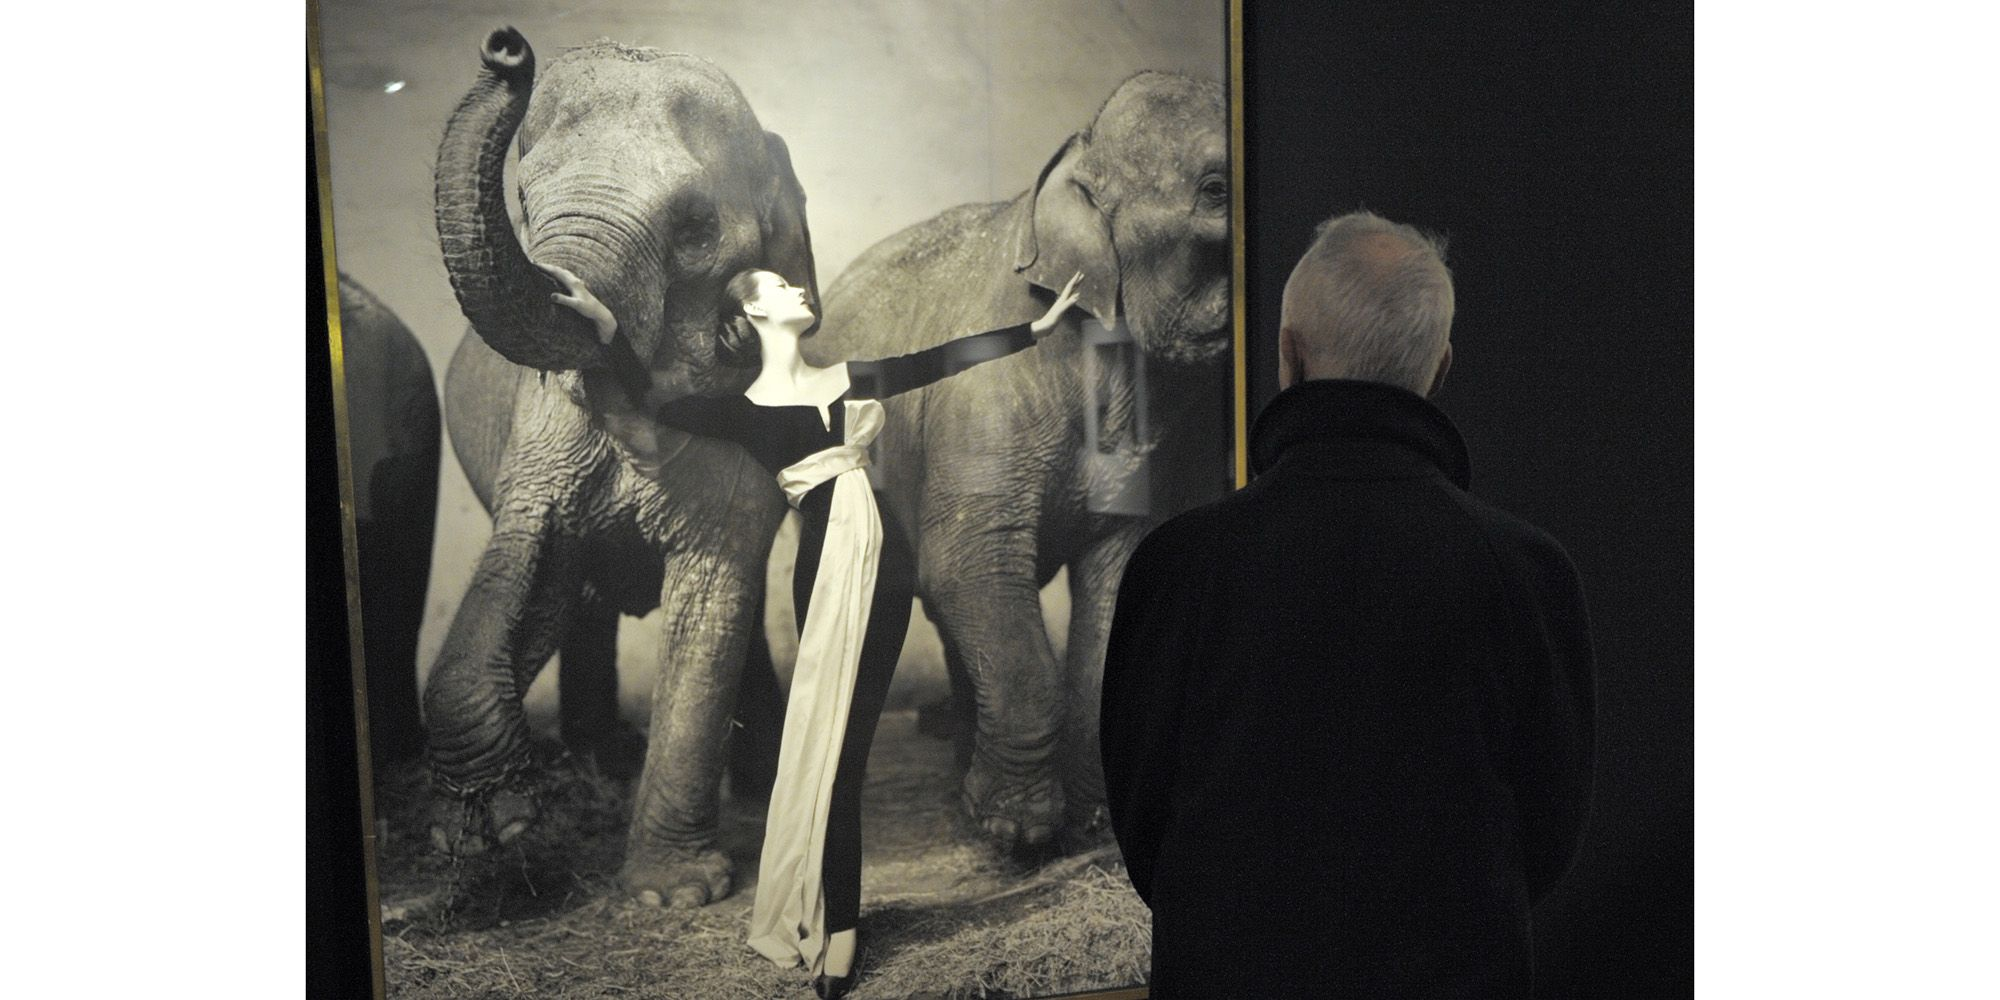 "<p>At the height of her fame in the '50s, Dovima was said to be the highest paid model in the world. She ushered in a new era of elegance, working with iconic photographers like Irving Penn and Richard Avedon to create unforgettable images. ""Dovima with Elephants,"" taken in 1955 by Richard Avedon, remains an industry legend. It has everything the future of fashion photography would seek to encompass: beauty, grace, elegance, drama, and controversy.</p>"